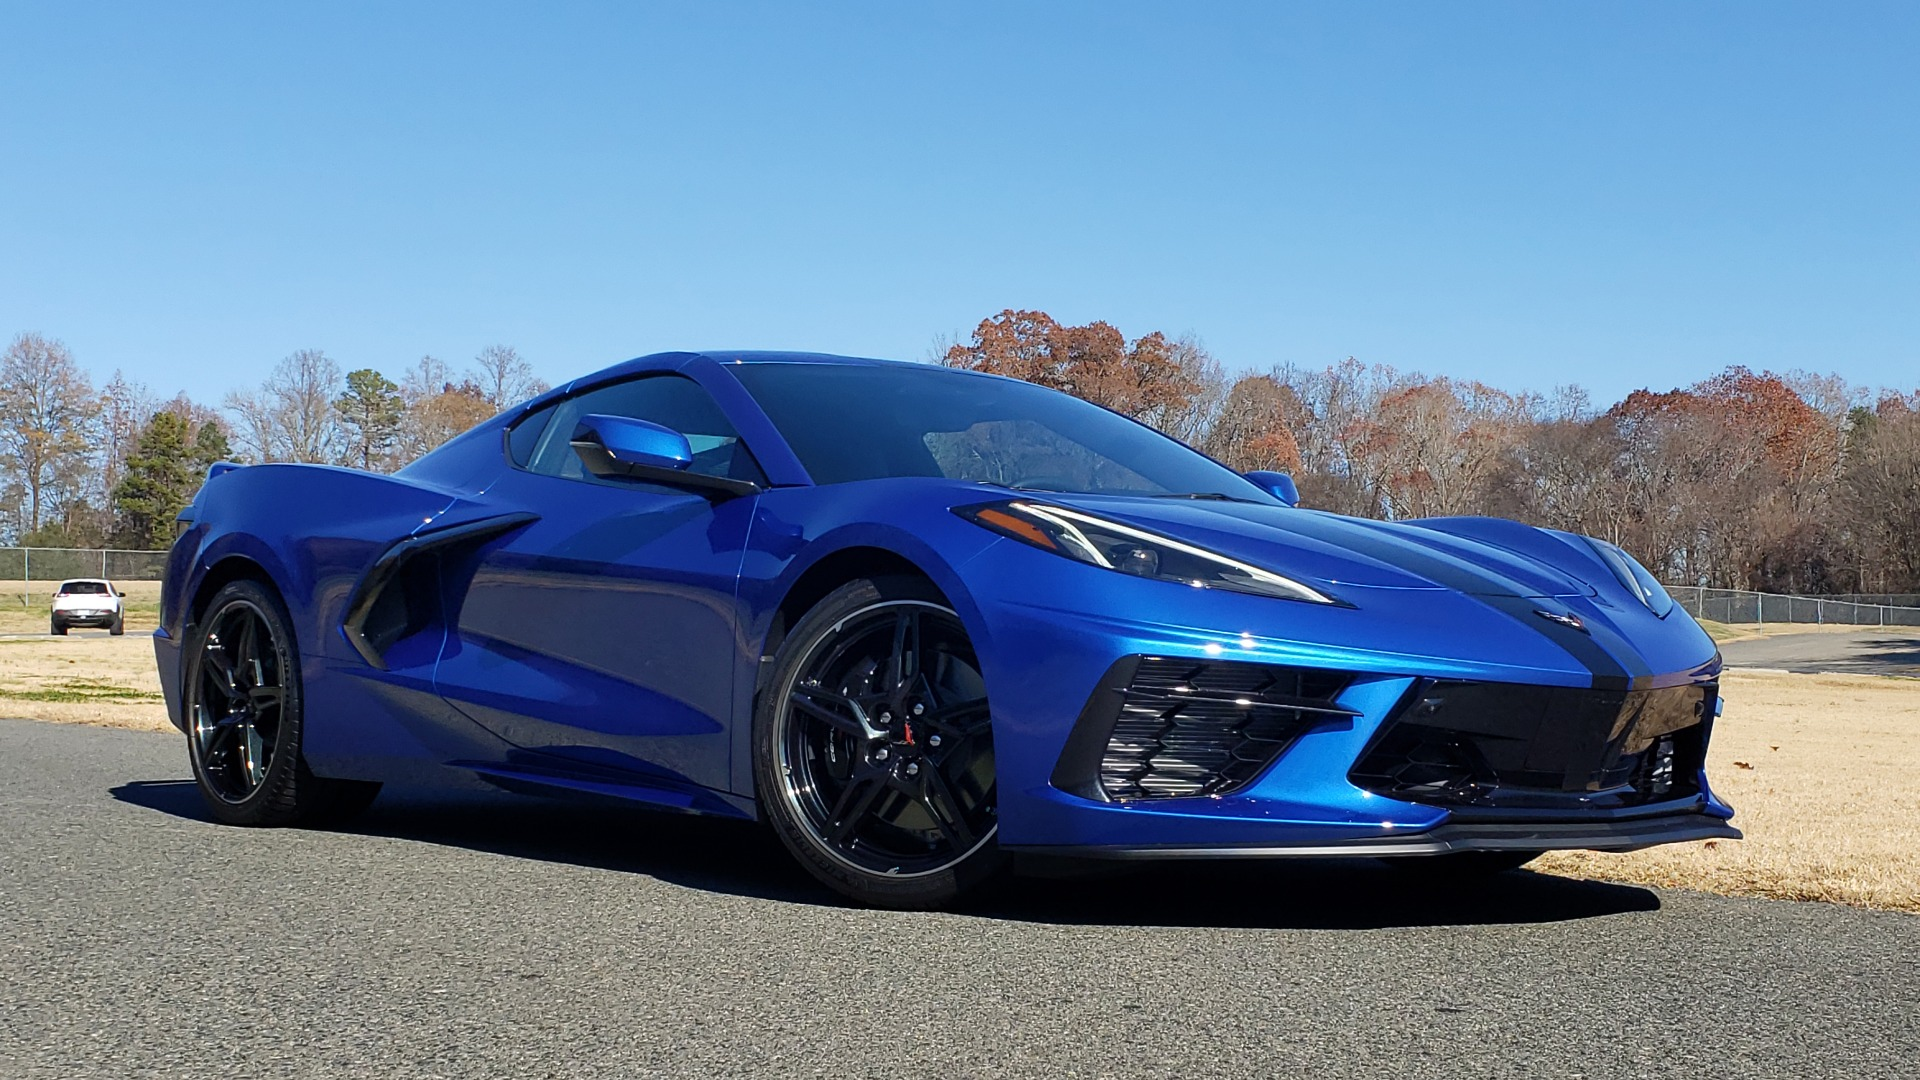 Used 2020 Chevrolet C8 CORVETTE STINGRAY 2LT COUPE / NAV / HUD / BOSE / GT2 SEATS / FRONT LIFT / REARVIEW for sale Sold at Formula Imports in Charlotte NC 28227 2